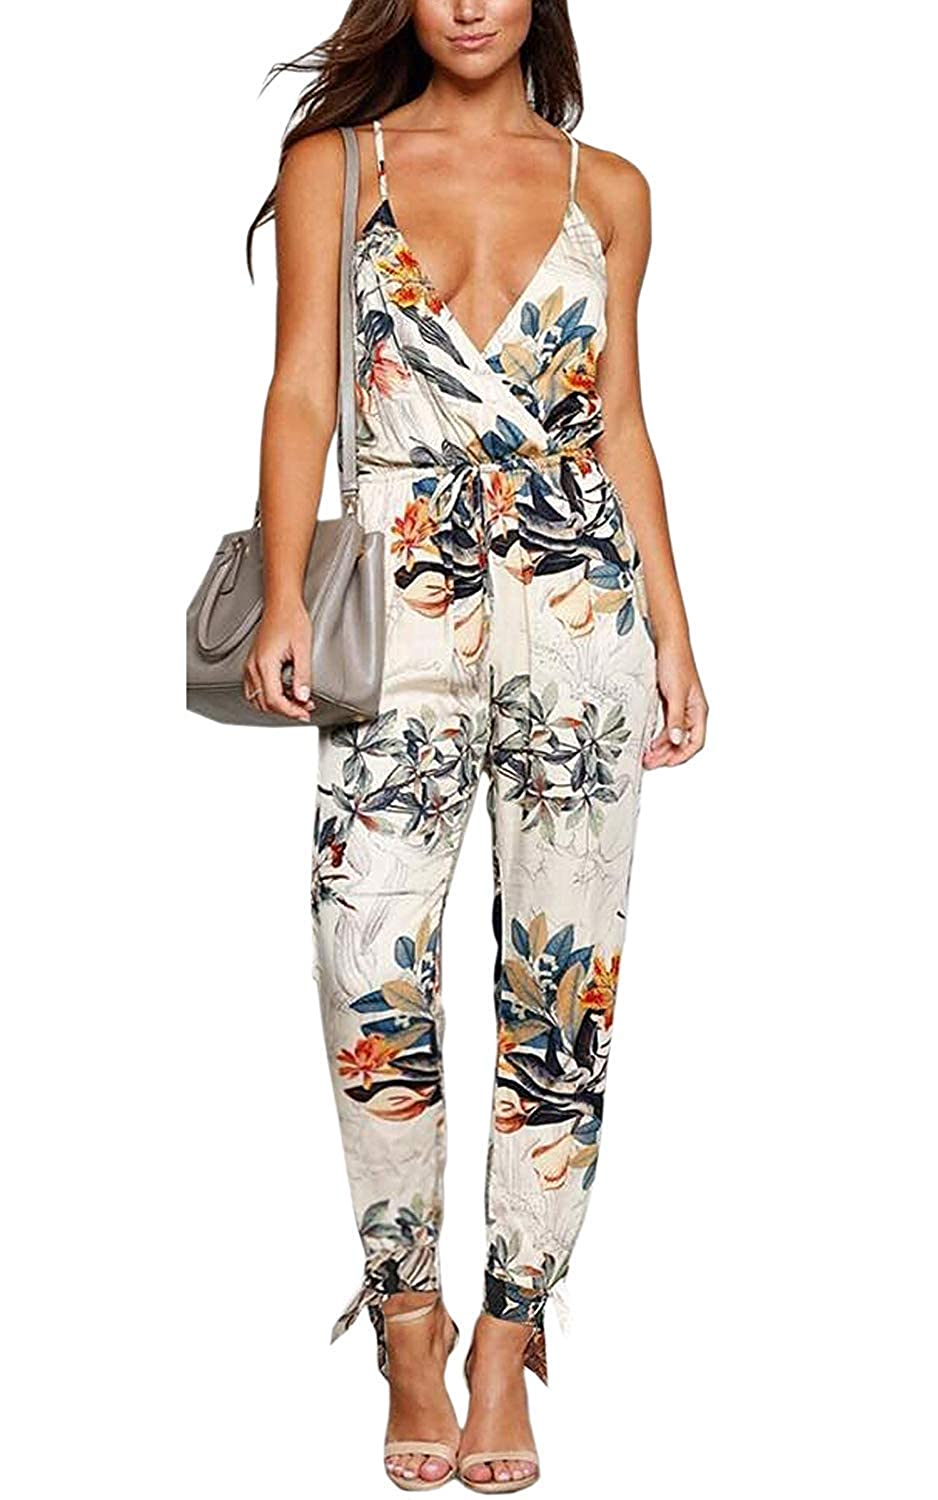 QUEENIE VISCONTI Women Wide Leg Jumpsuits  Summer Spaghetti Strap Floral Vacation Beach Drawstring Pants Rompers White